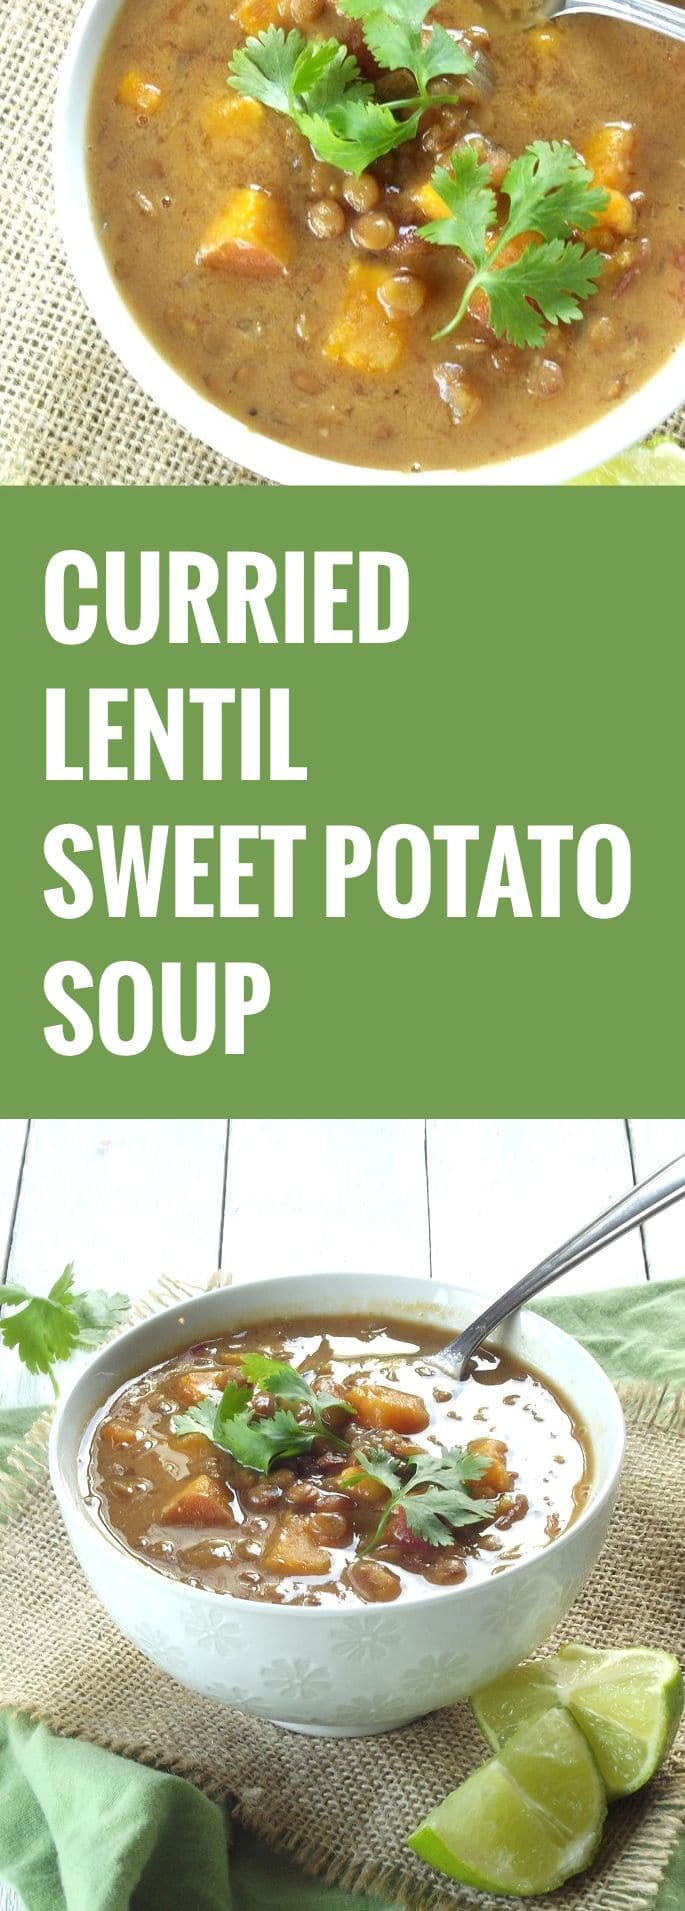 Curried Lentil Sweet Potato Soup - Connoisseurus Veg